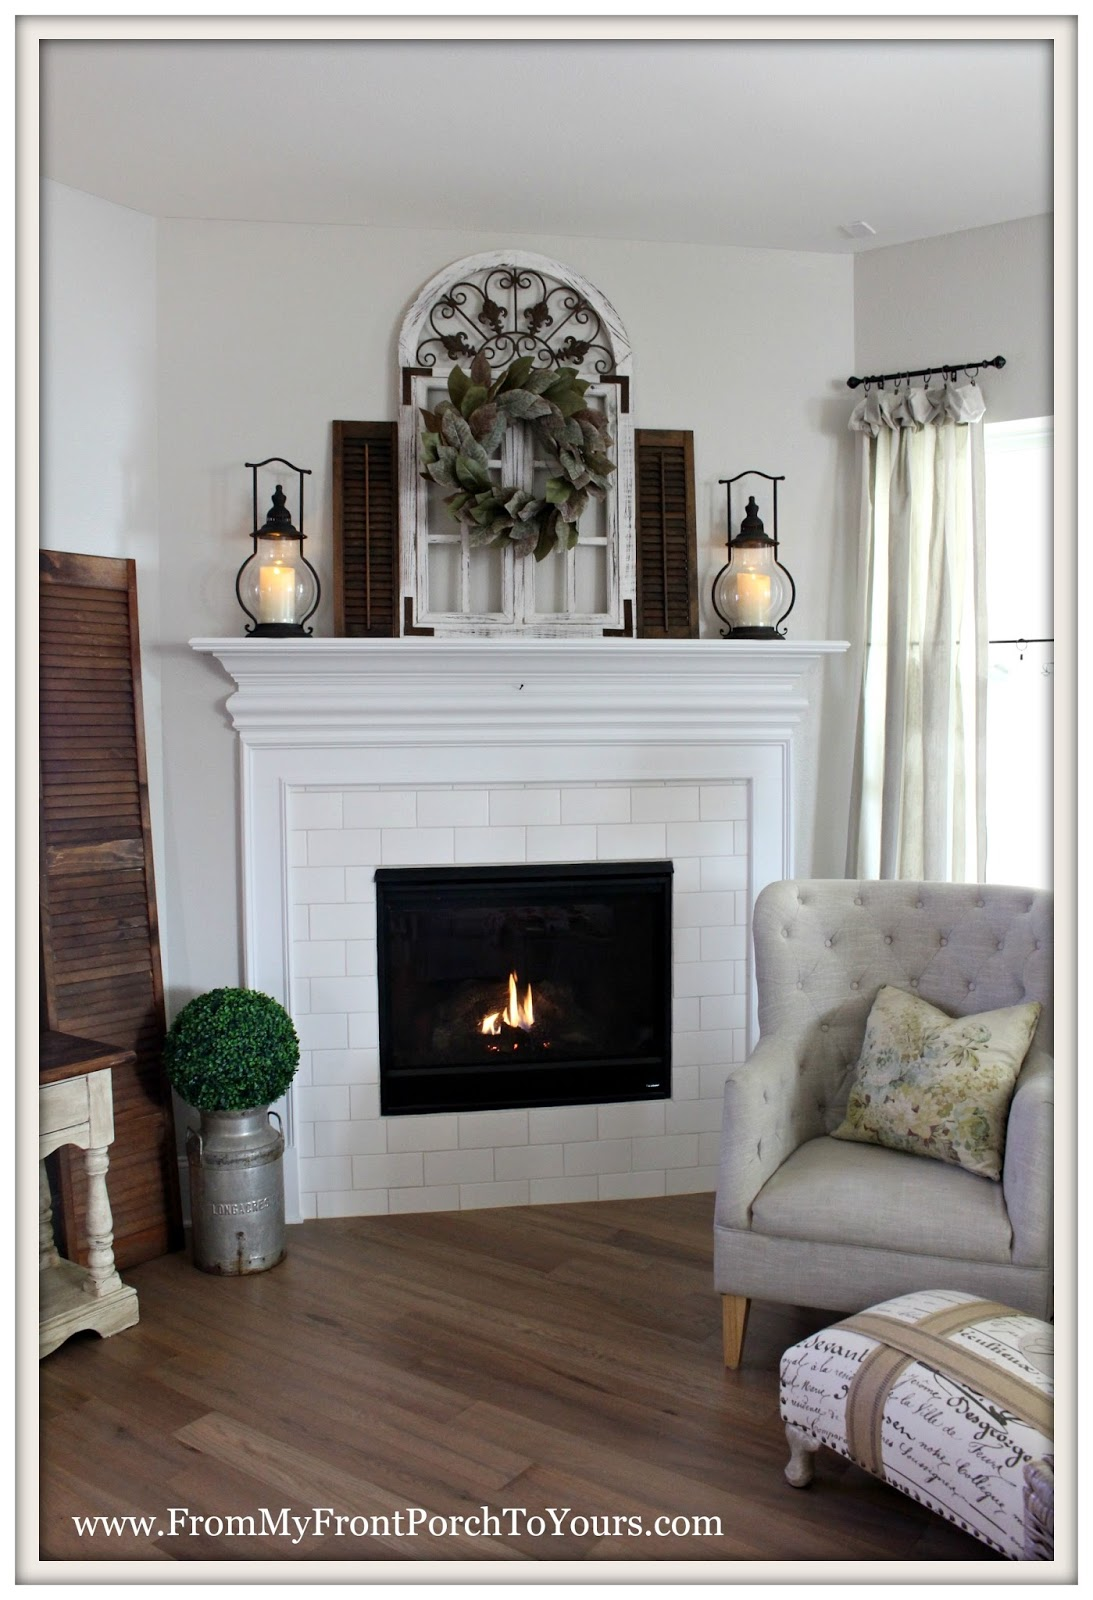 Old Farmhouse Fireplaces From My Front Porch To Yours Farmhouse Fireplace Mantel